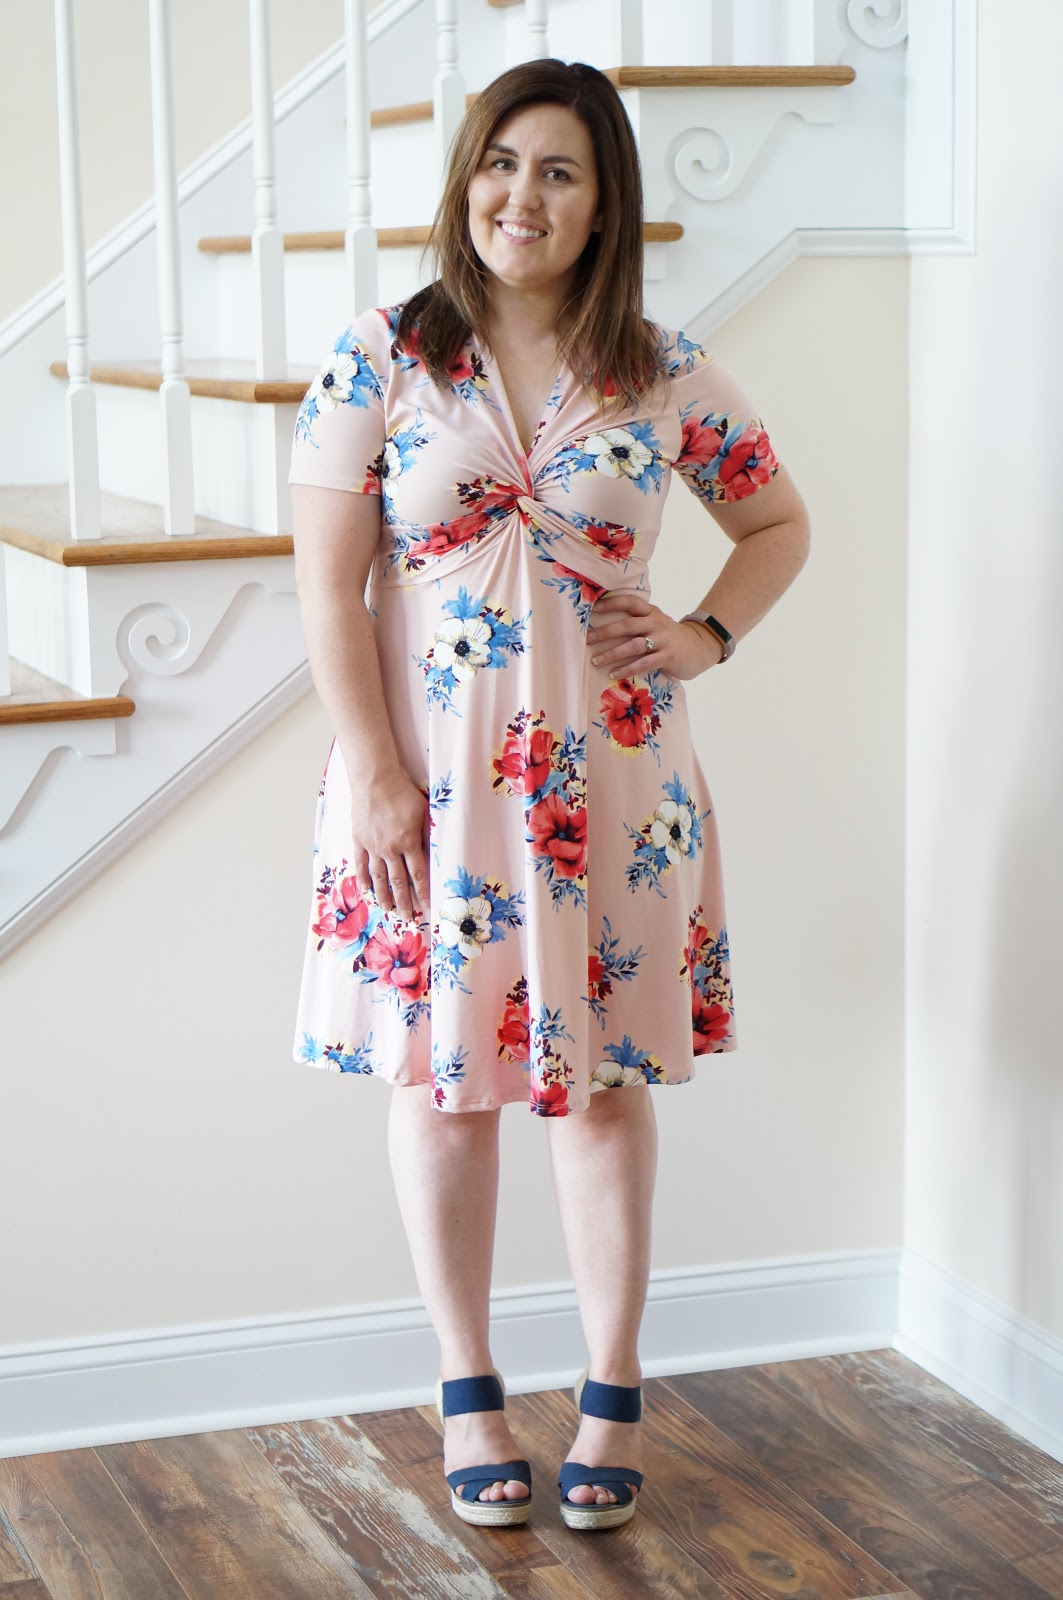 North Carolina style blogger Rebecca Lately shares how to style a simple floral dress for spring.  Check it out to read about her ethical find!